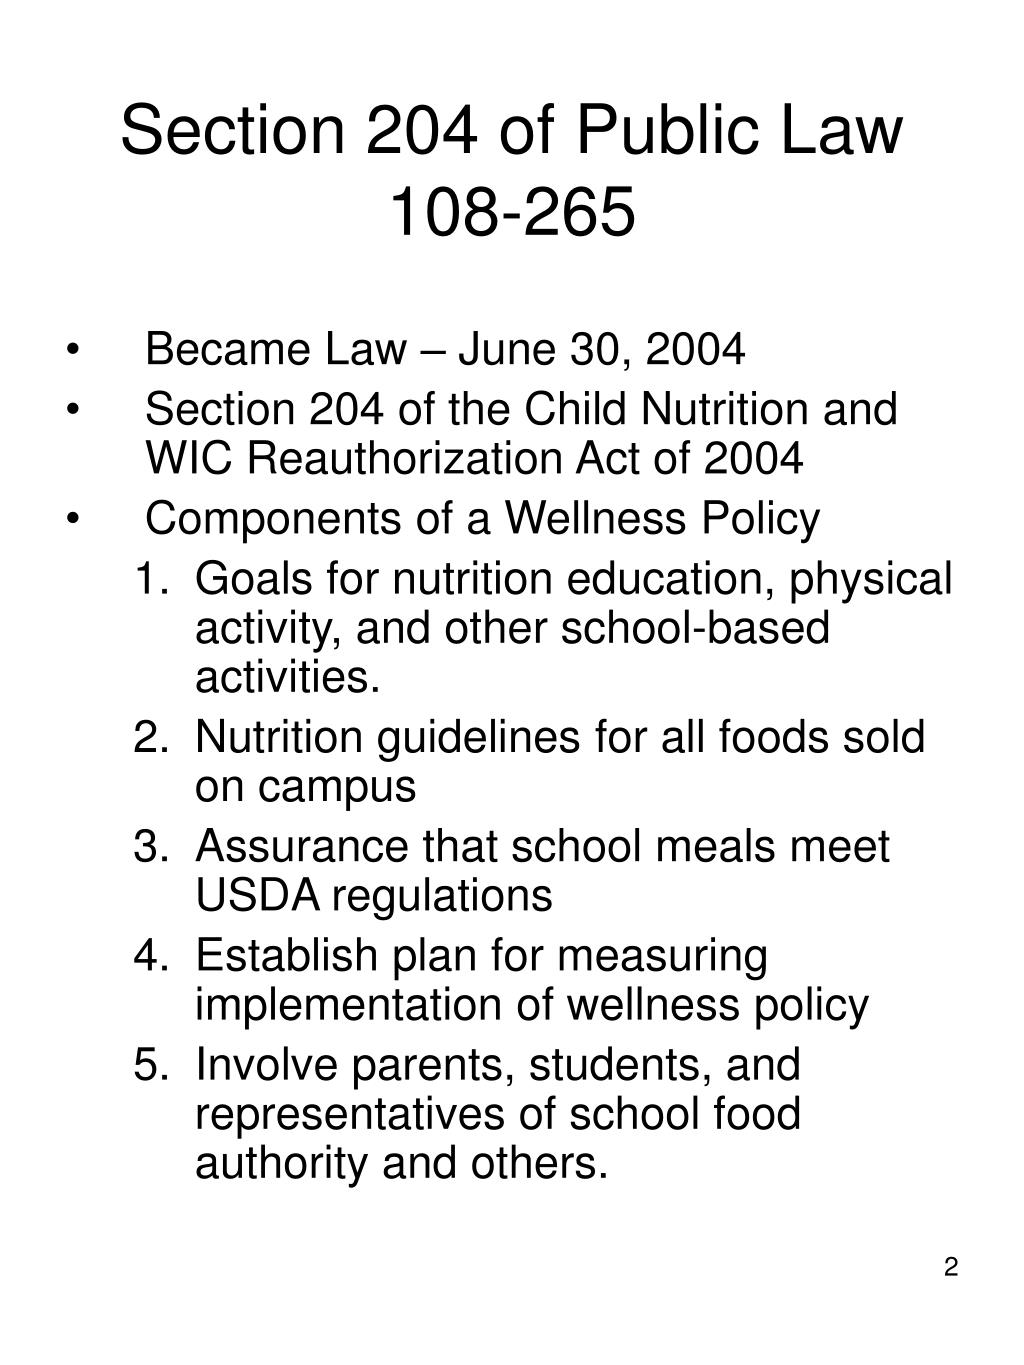 Section 204 of Public Law 108-265